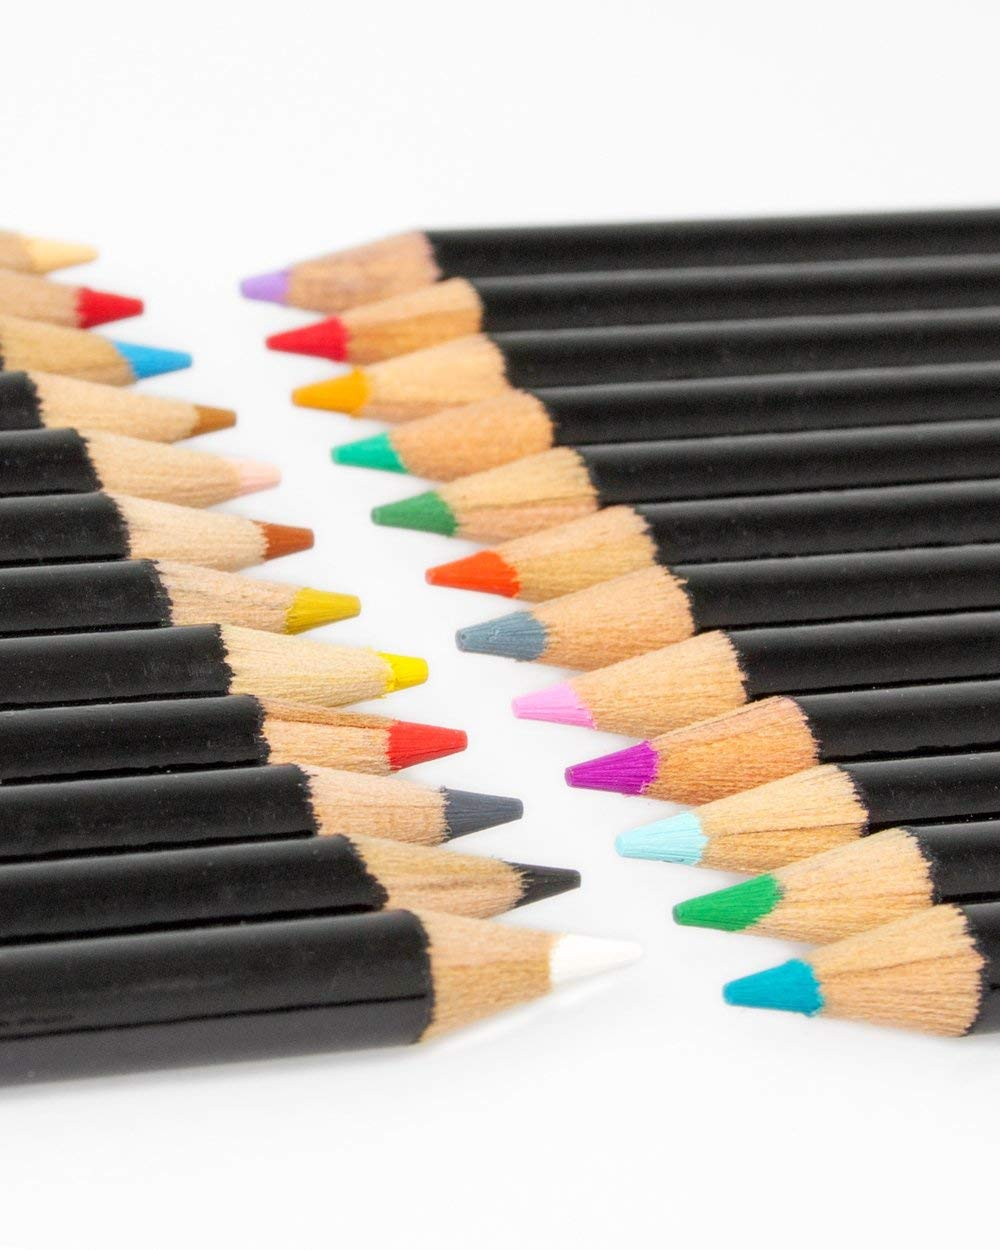 Includes Premium Colored Pencils ColorIt Colored Pencil Set of 24 Travel Case and Pencil Sharpener Perfect Coloring Pencils For Adult Coloring Books with bright colors